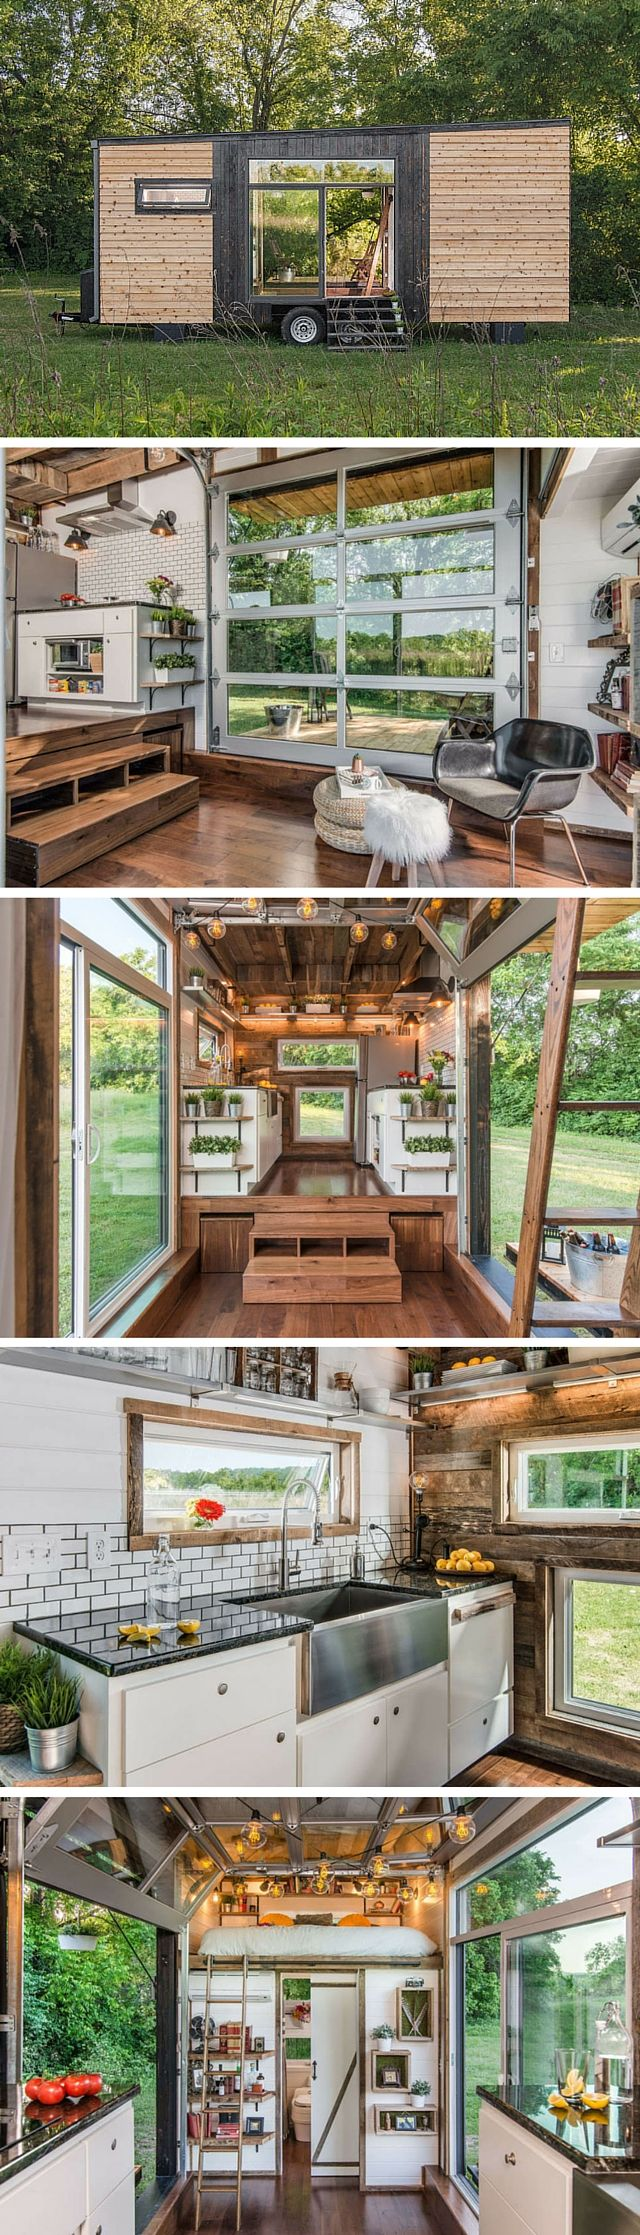 View toward kitchen the alpha tiny home by new frontier tiny homes - The Alpha Tiny House By New Frontier Tiny Homes